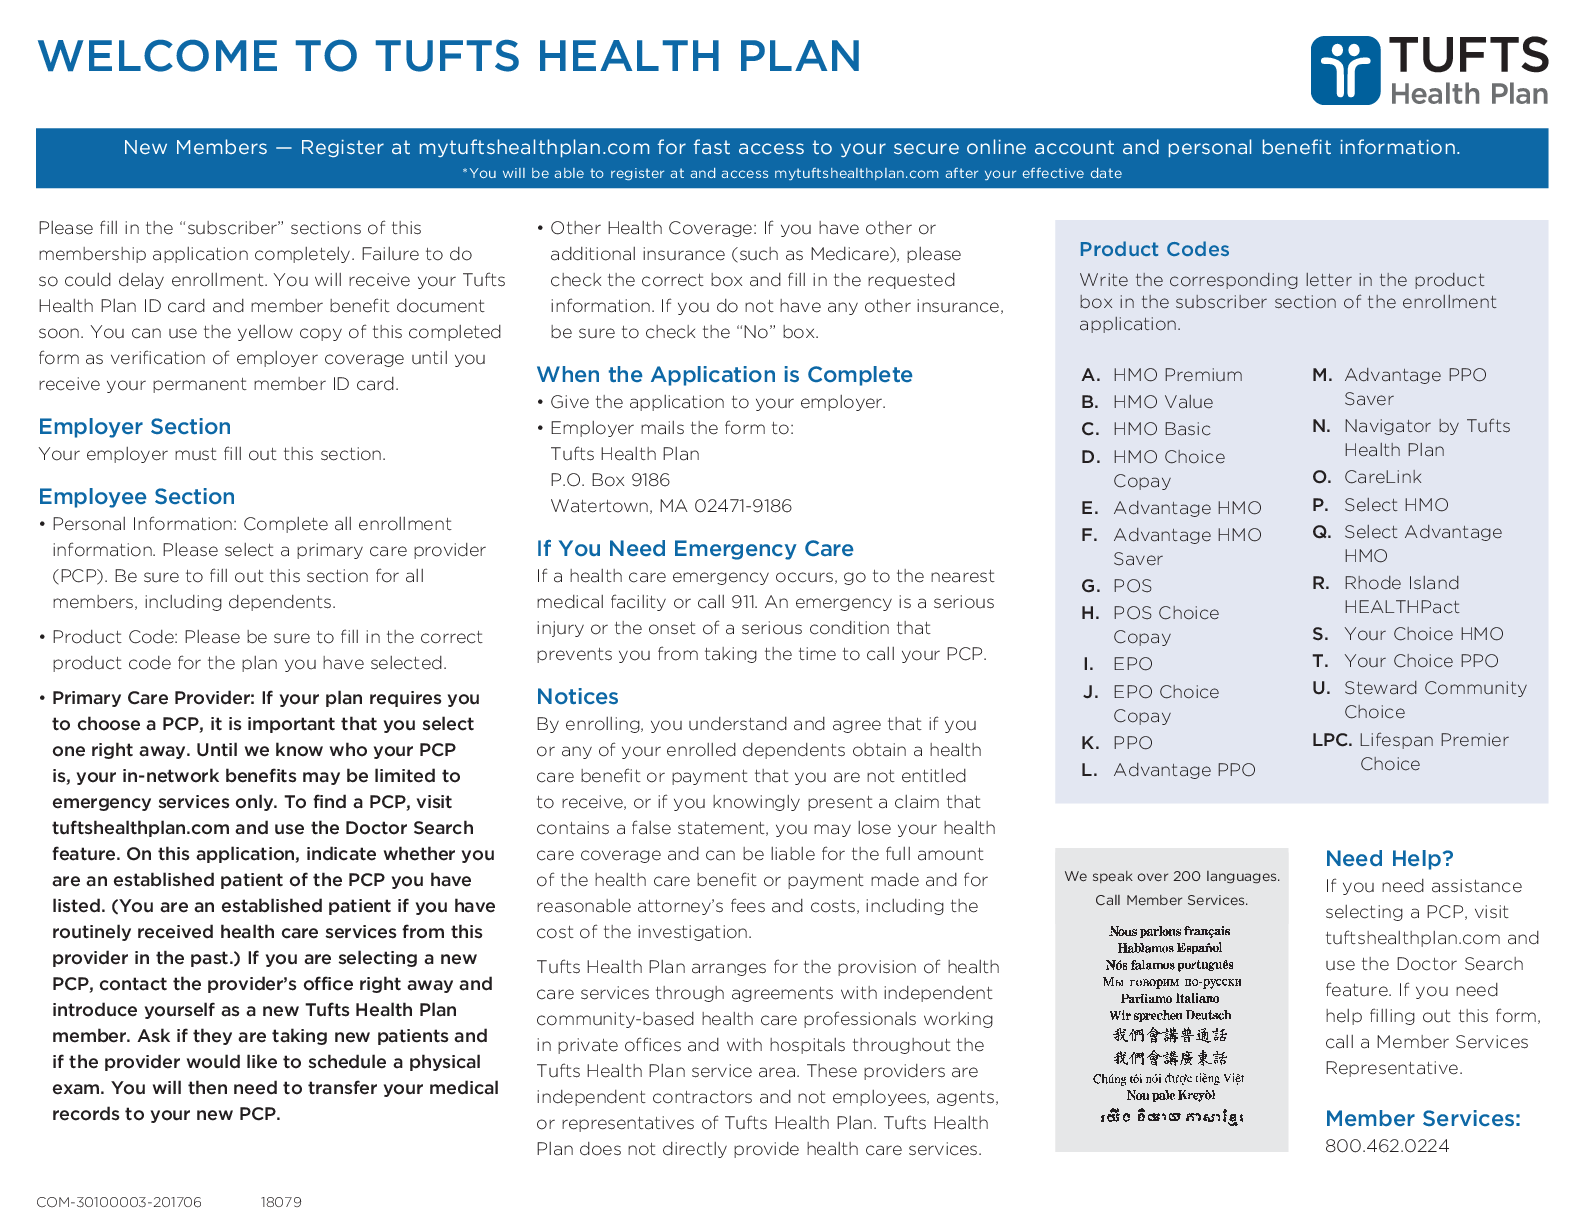 New Members Register At Mytuftshealthplan Form Fillable Pdf